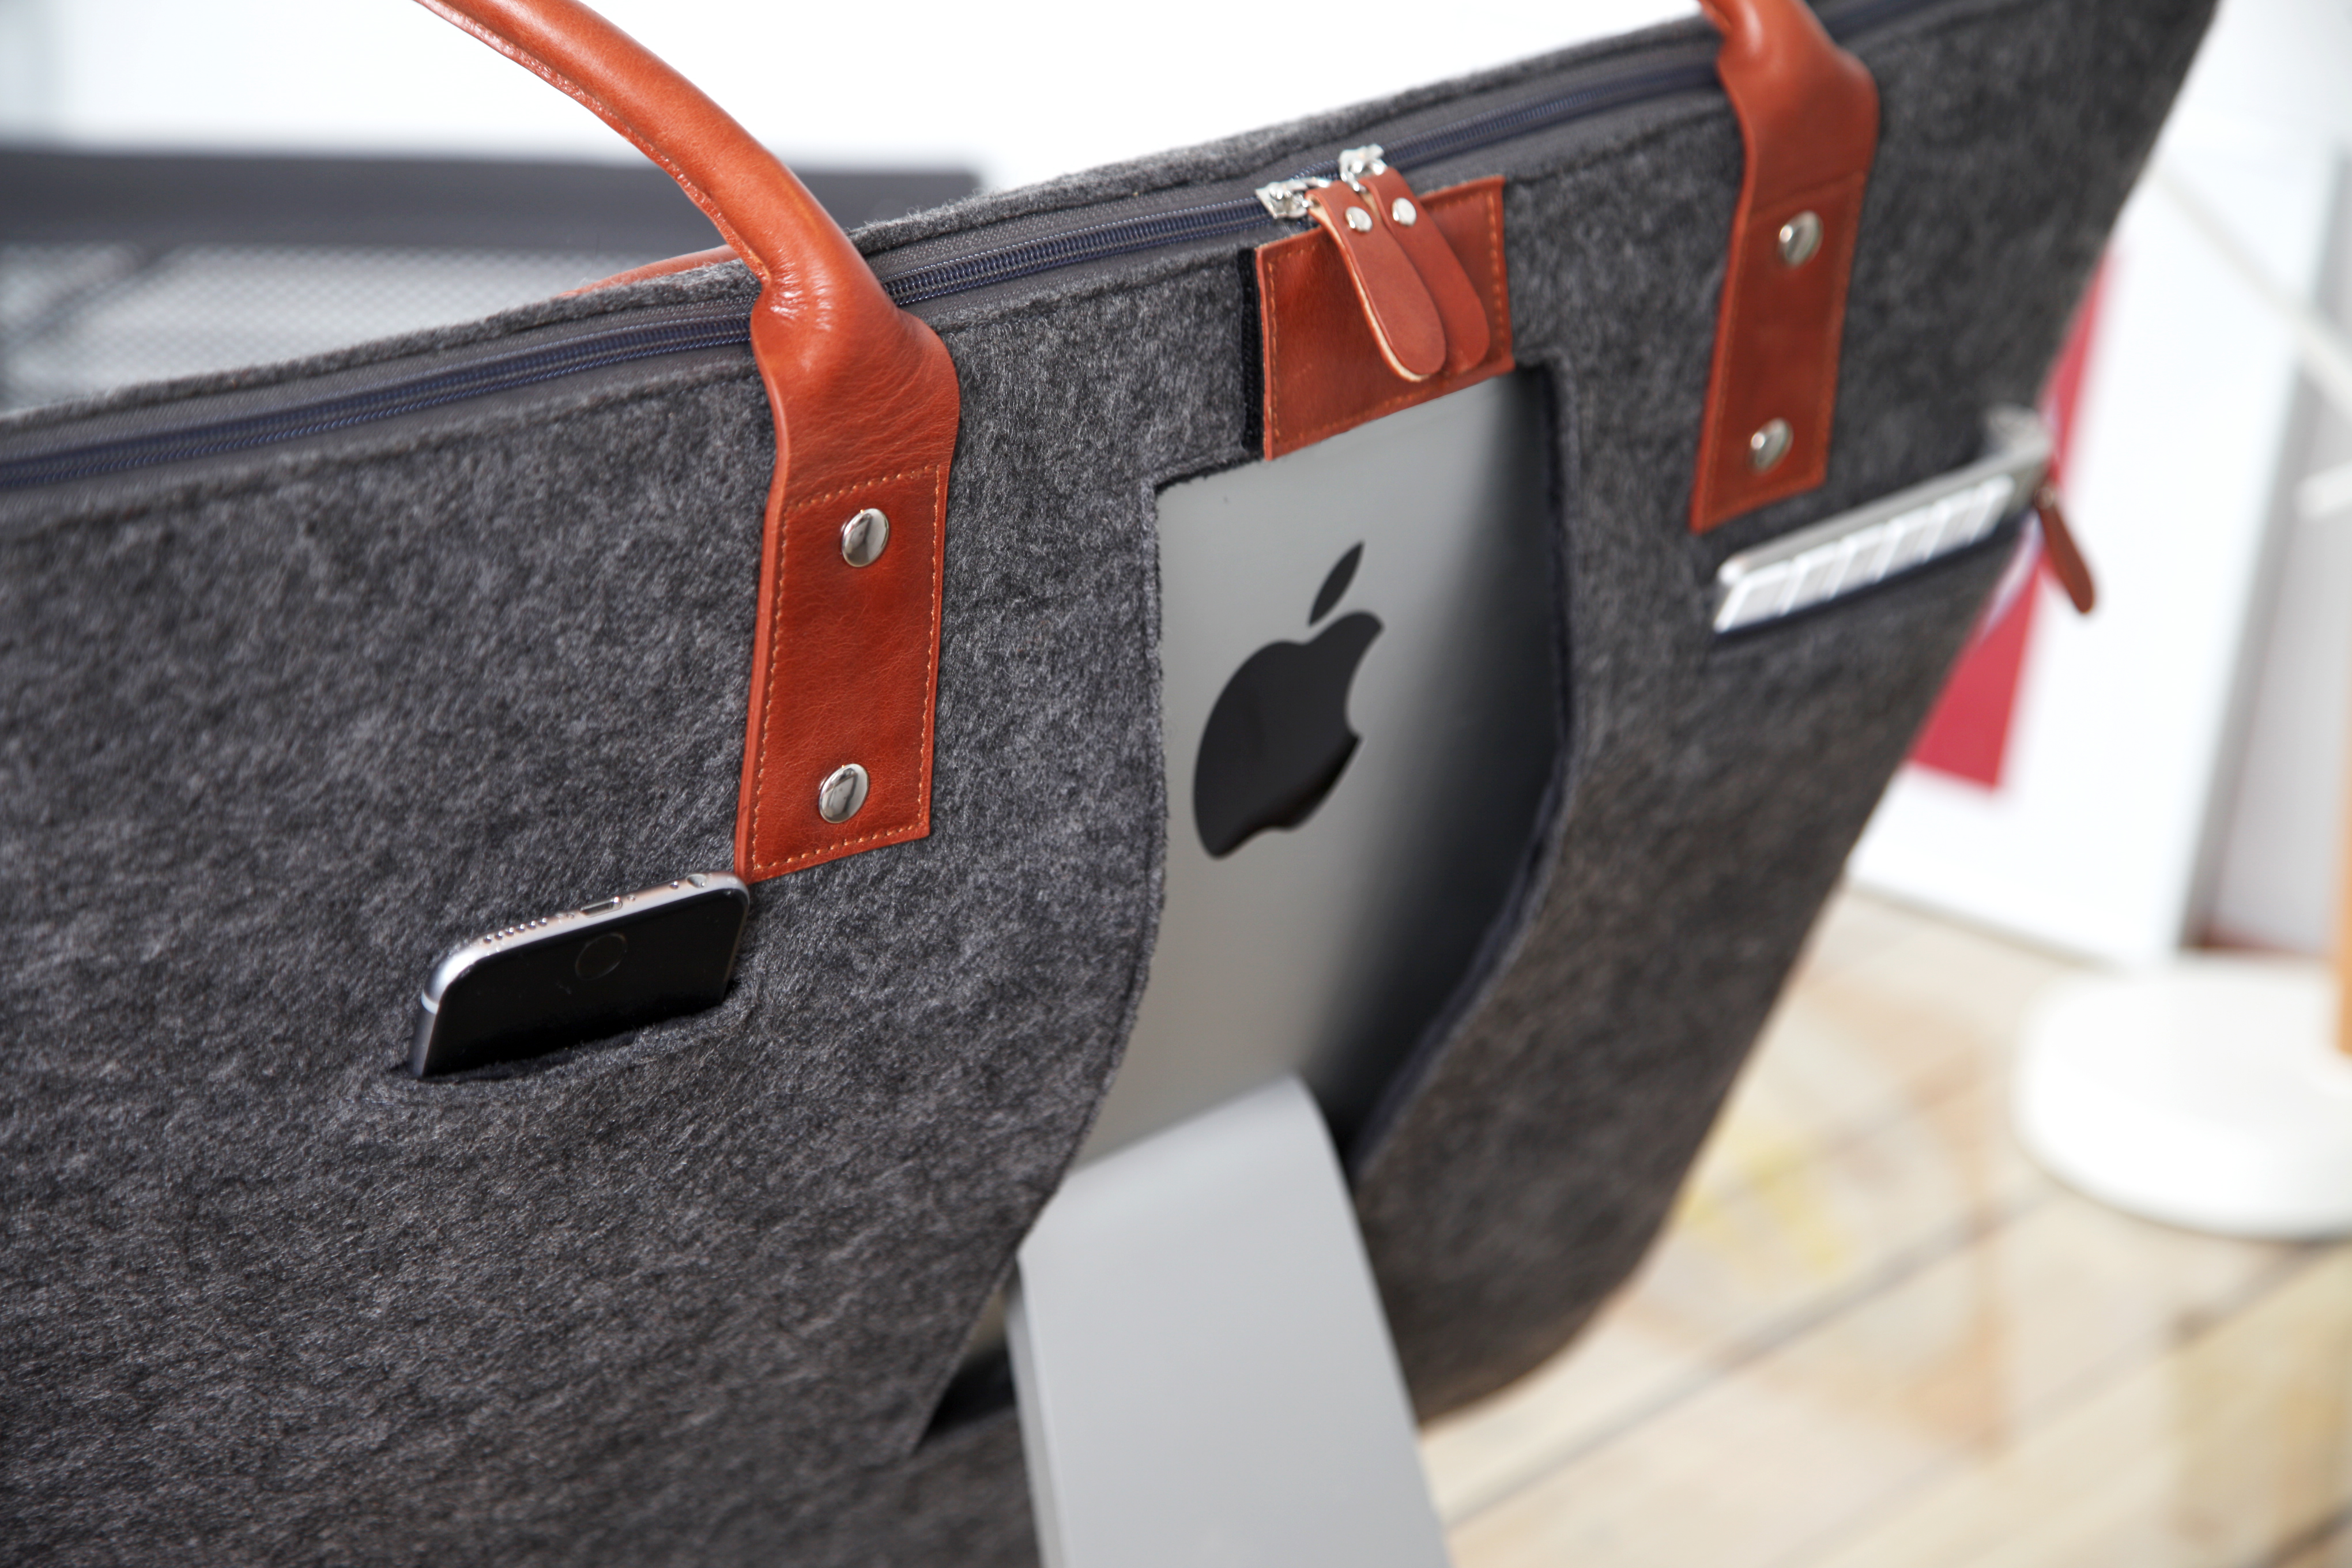 great fit a2ed5 c6706 Details about Lavolta Carrying Case Tote Bag for Apple iMac 27 Inch Retina  5K - Leather & Felt